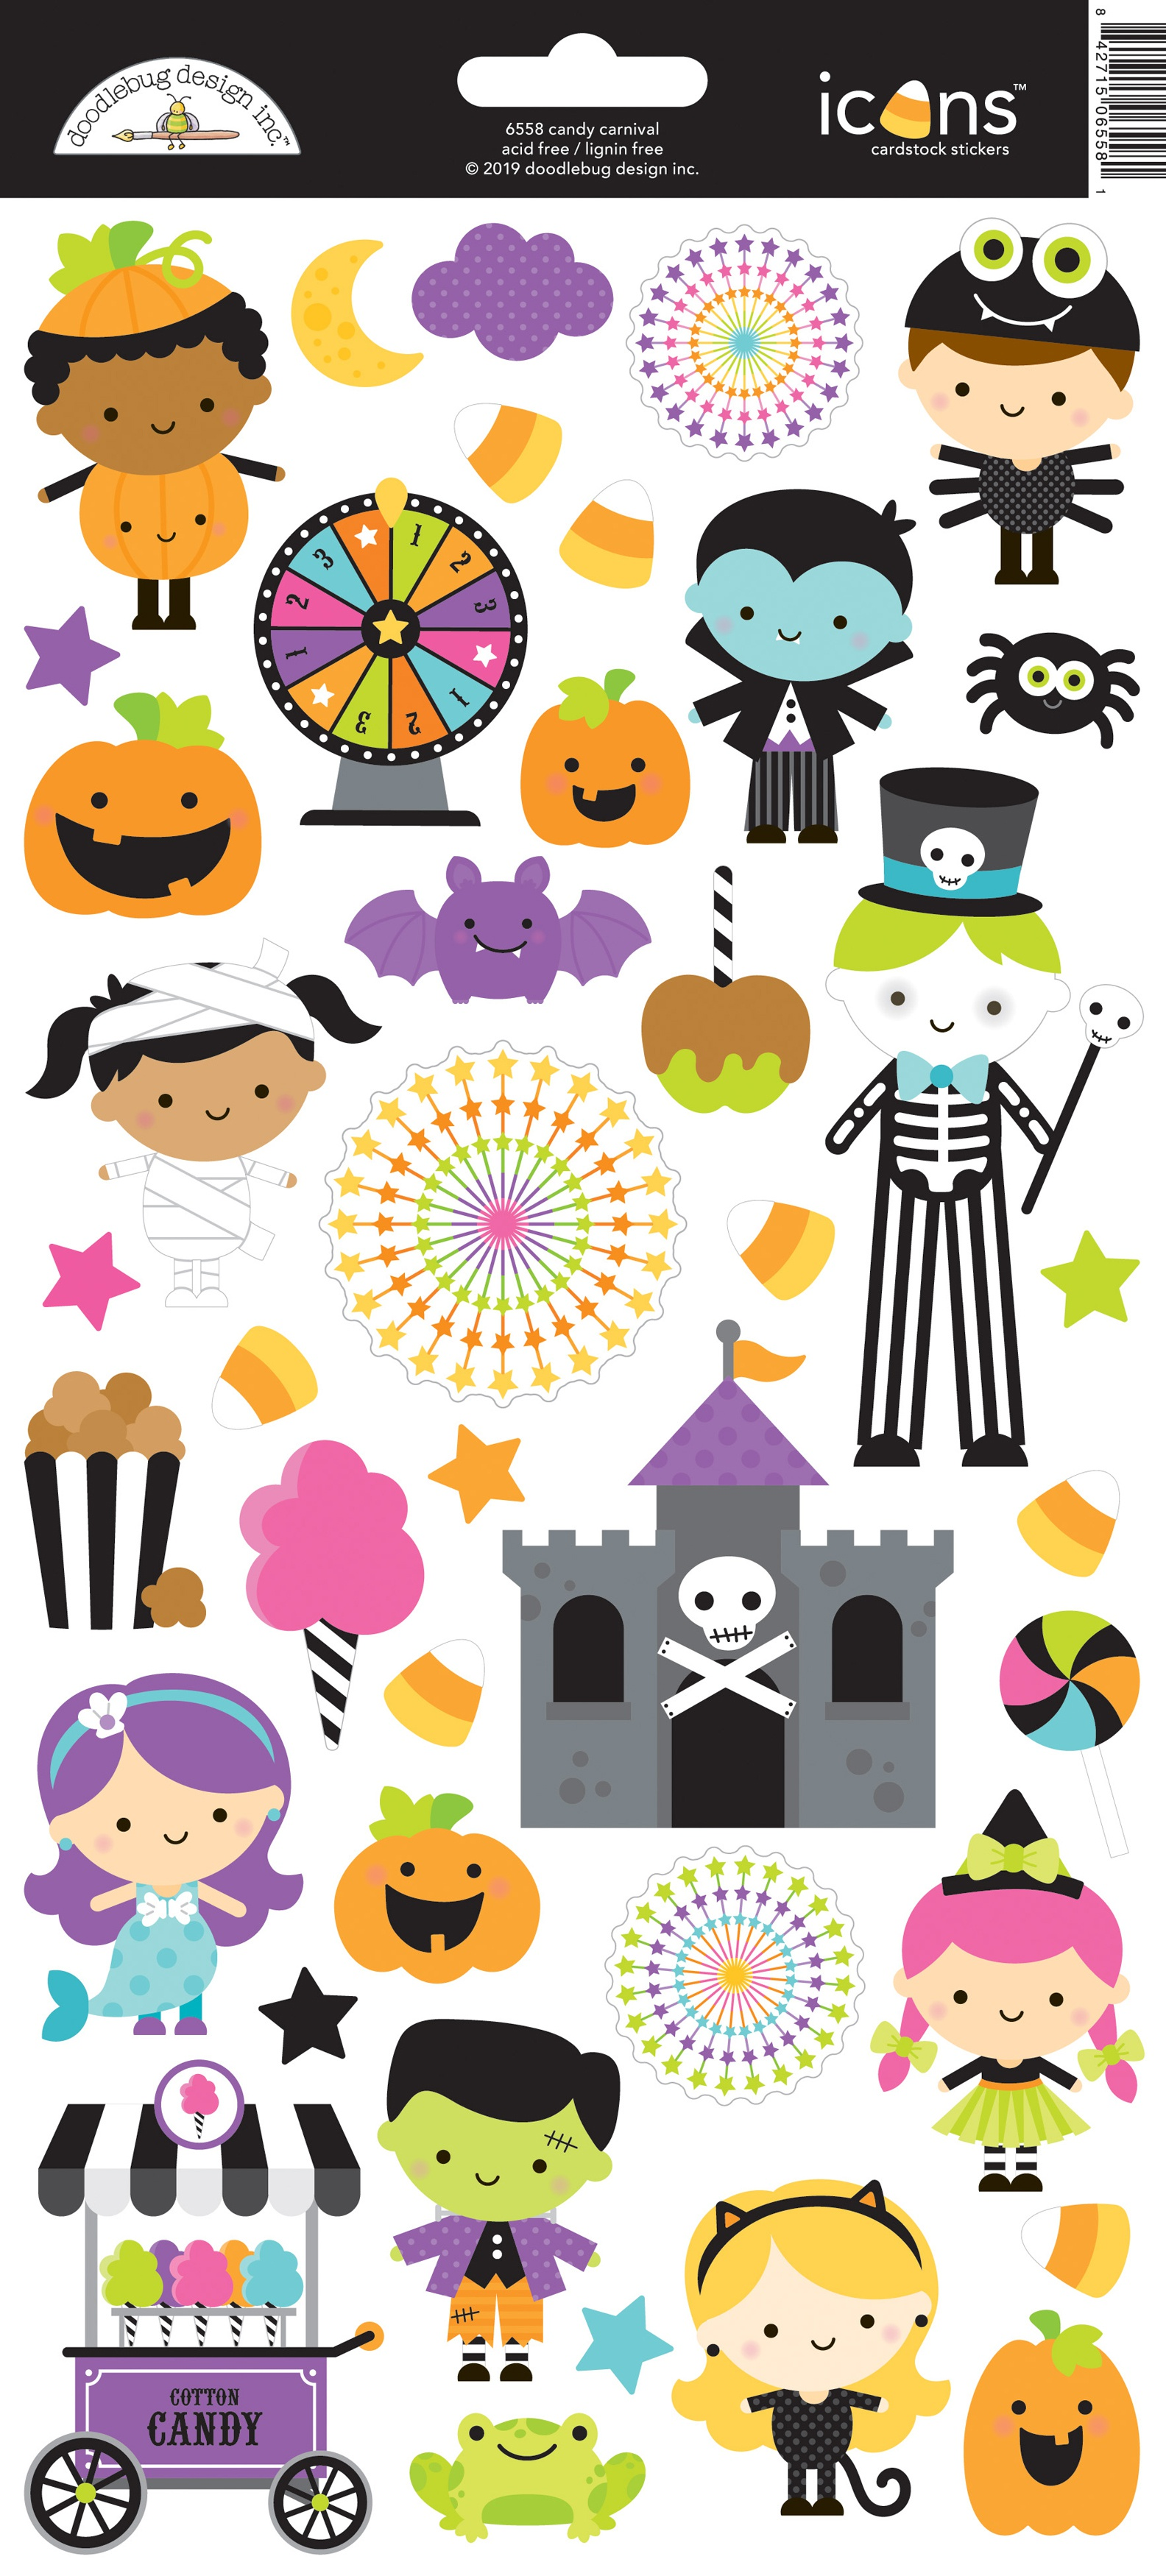 Candy Carnival Cardstock Stickers 6X13